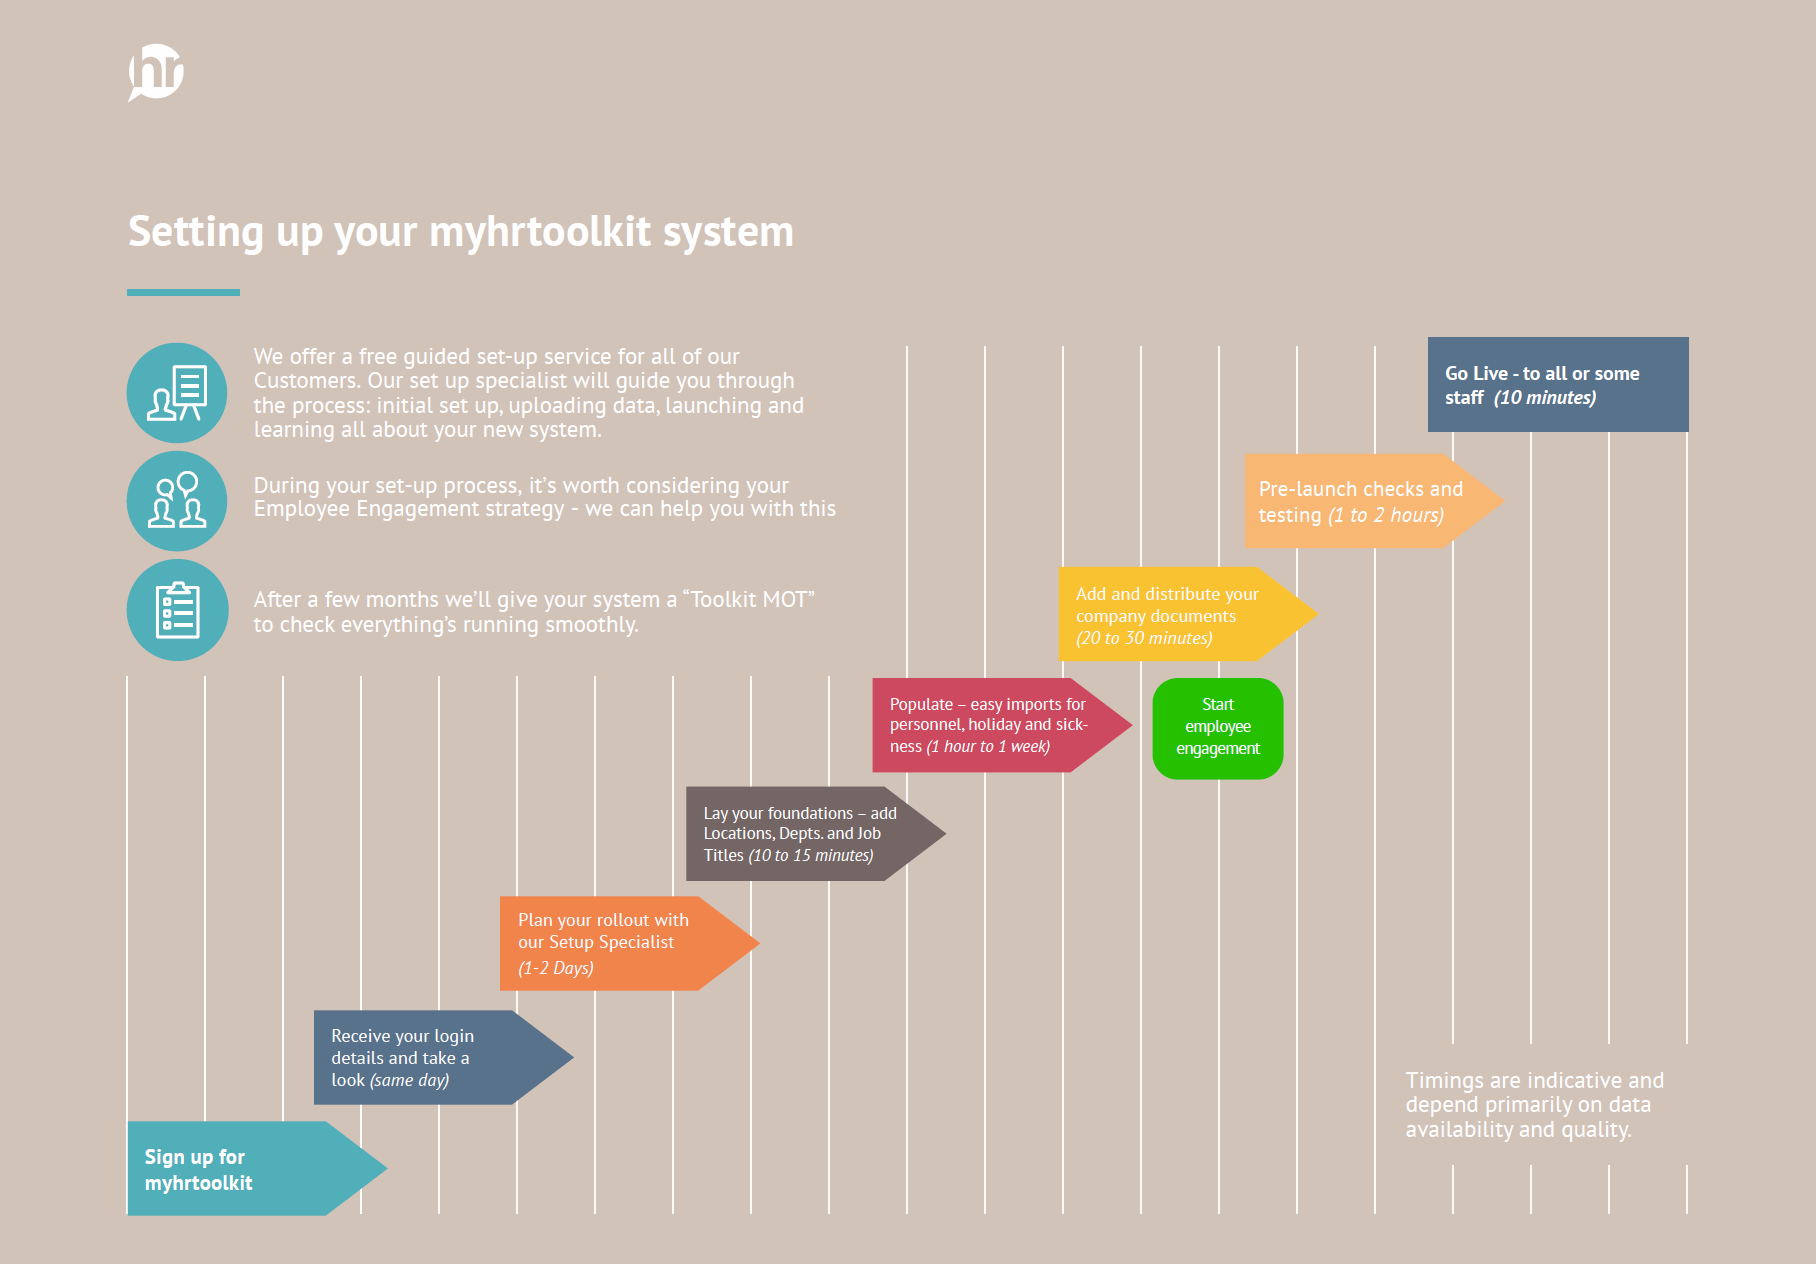 Myhrtoolkit HR software setup flowchart